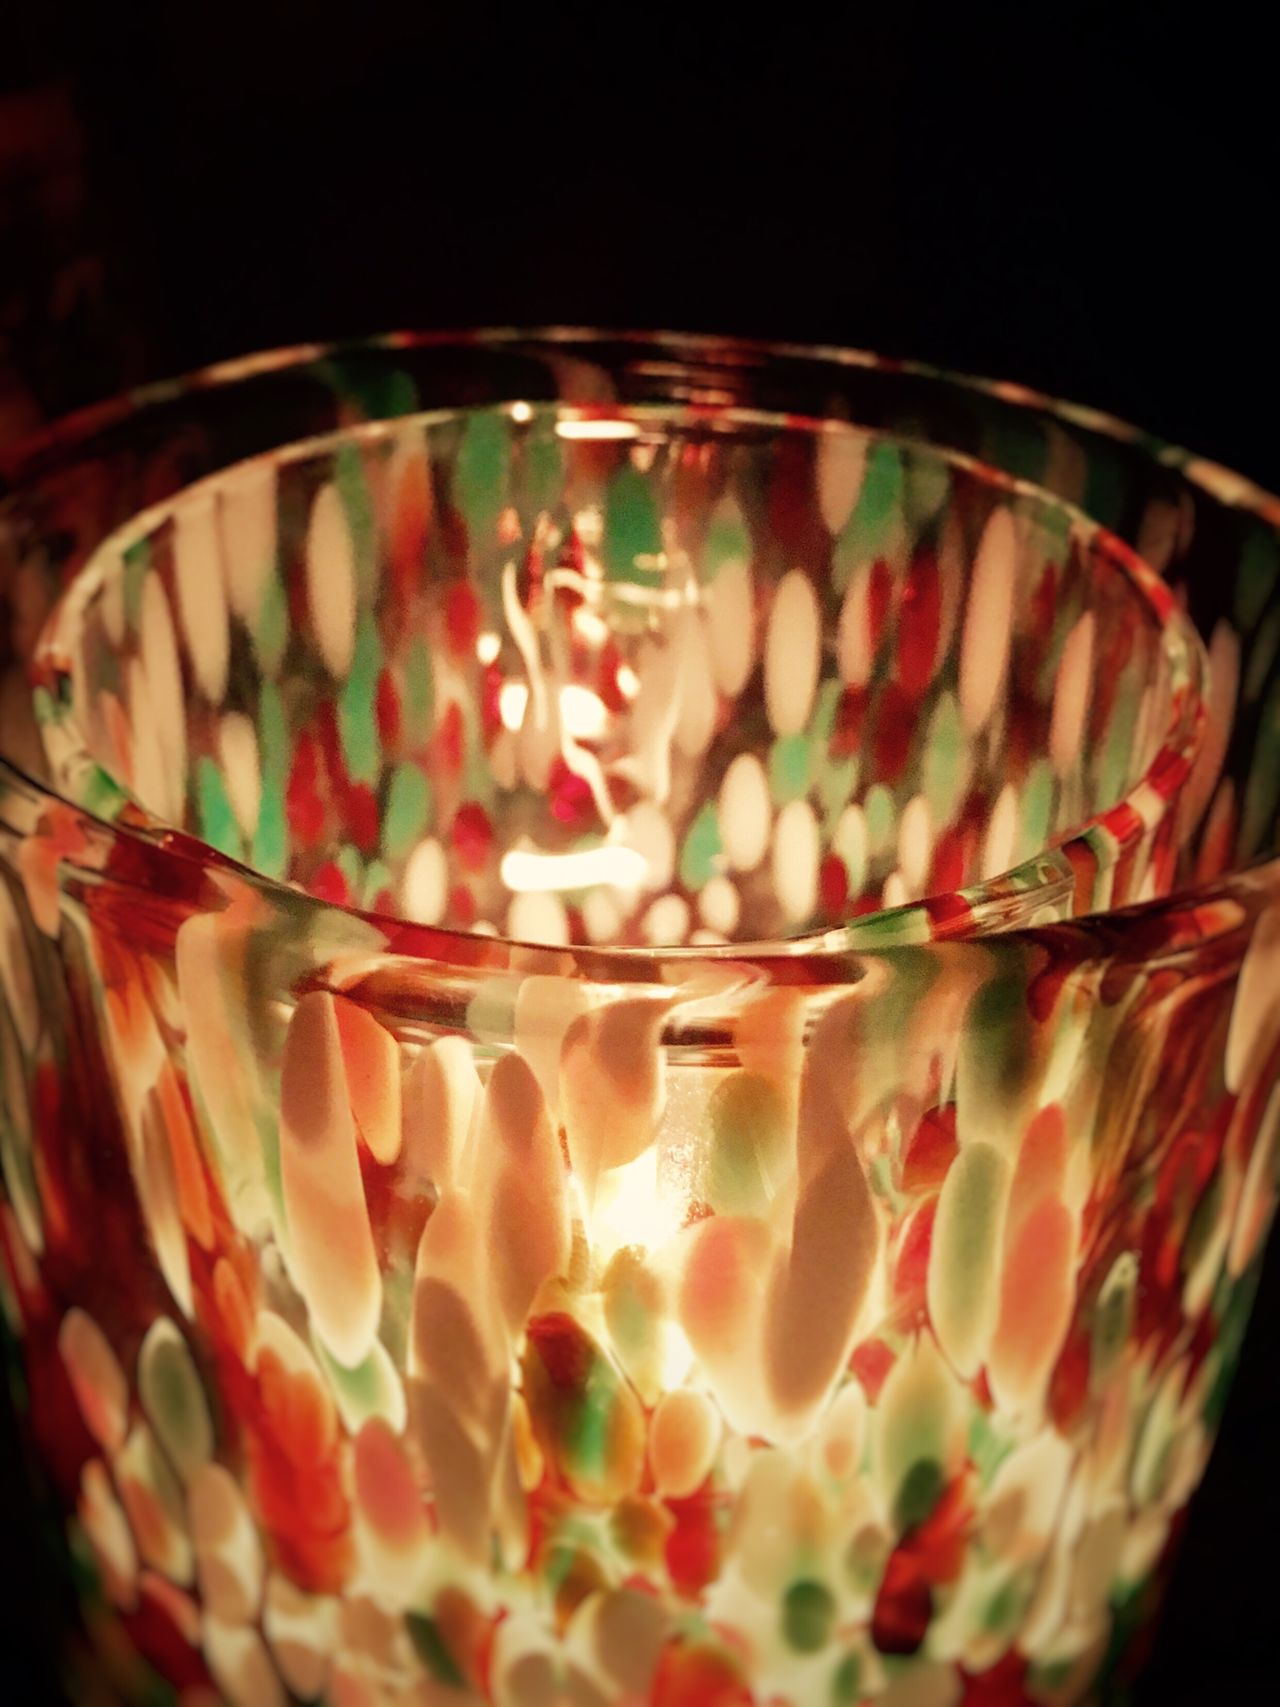 IPhoneography Black Background Close-up No People Indoors  Bowl Heat - Temperature Burning Tea Light